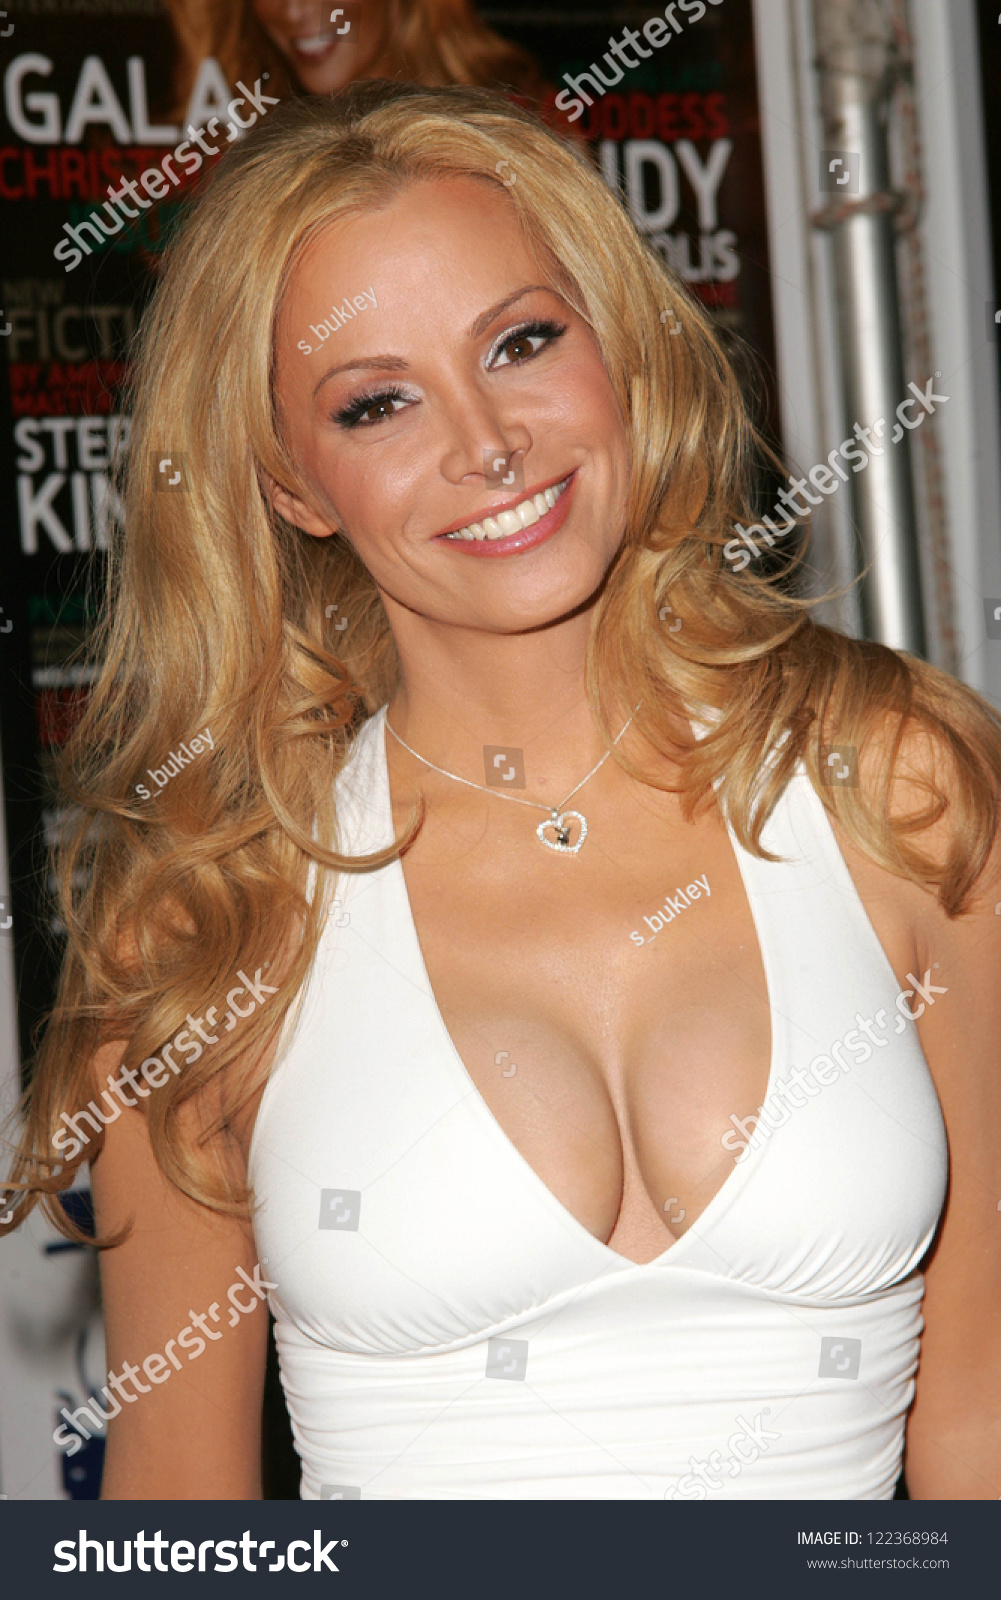 Cindy Margolis United States Cindy Margolis United States new photo